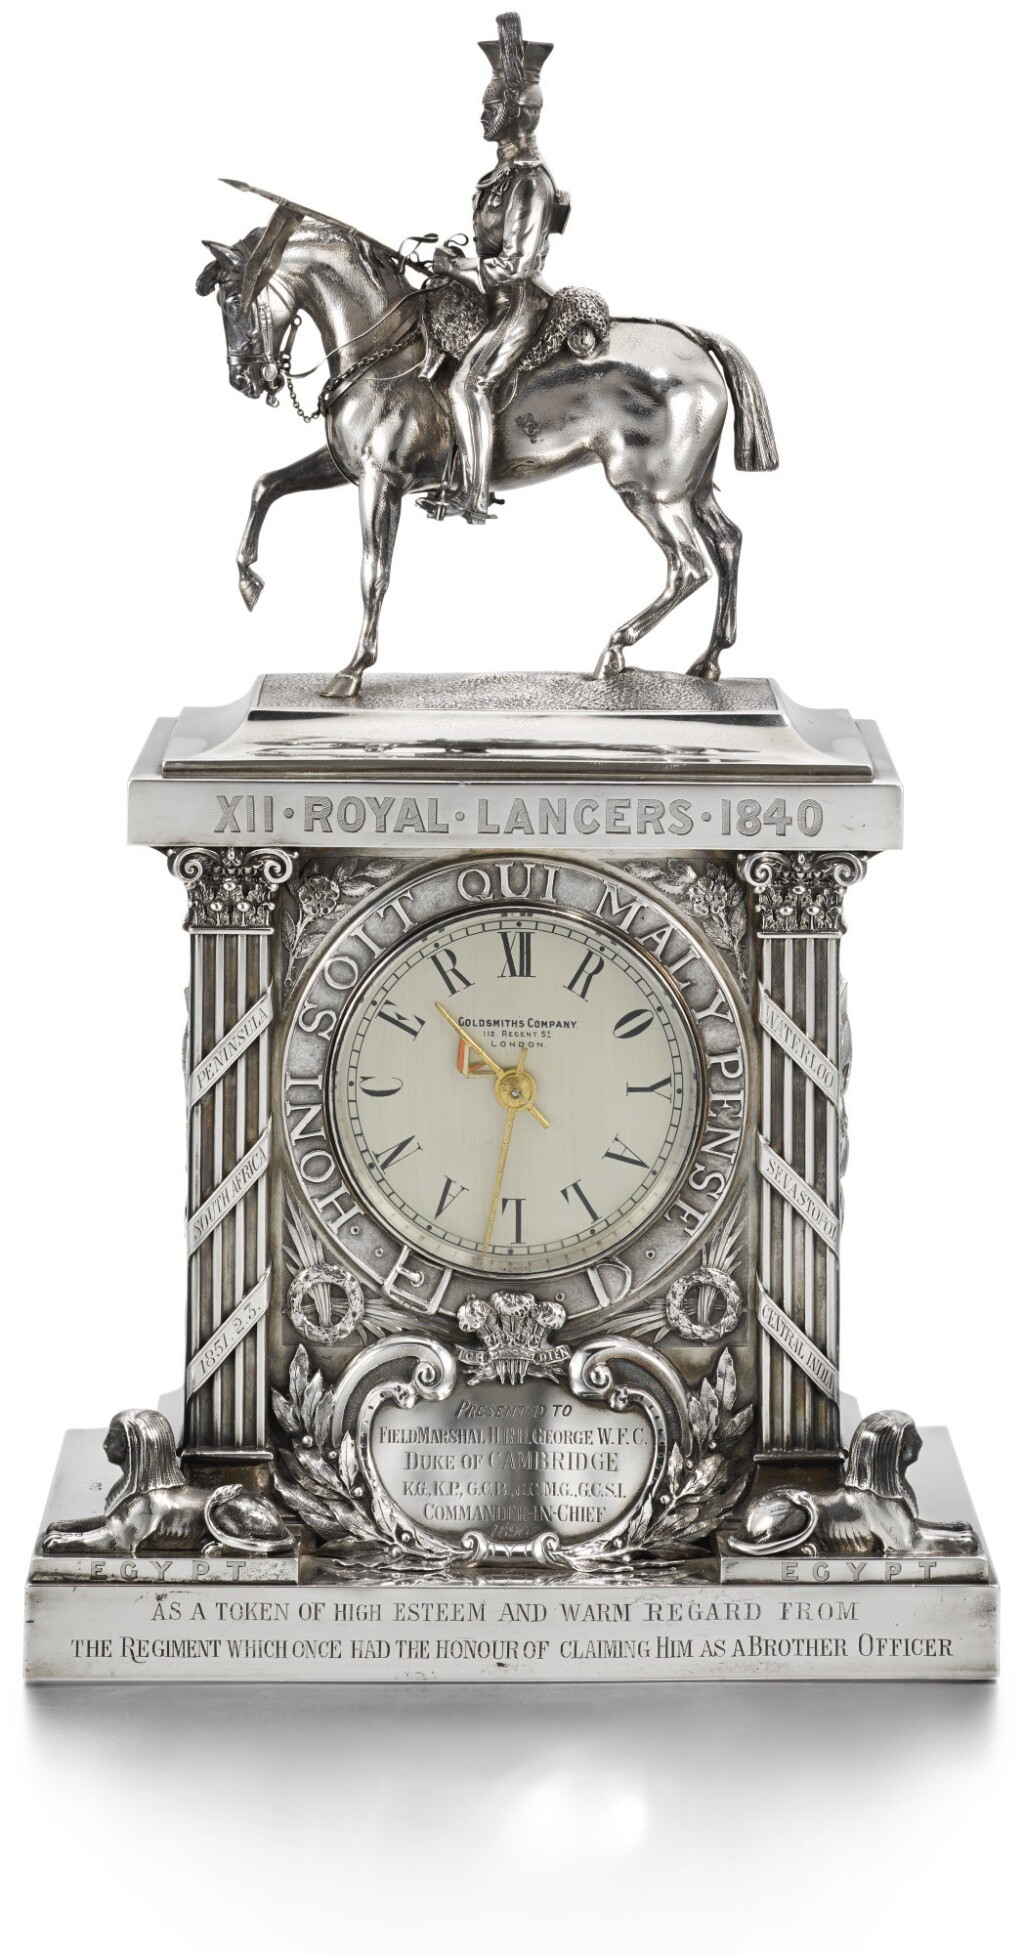 THE 12TH ROYAL LANCERS: A VICTORIAN SILVER-CASED TIMEPIECE, MAKER'S MARK OF WILLIAM GIBSON AND JOHN LAWRENCE LANGHAM TRADING AS THE GOLDSMITHS' & SILVERSMITHS' CO. AS RETAILERS, LONDON, 1890